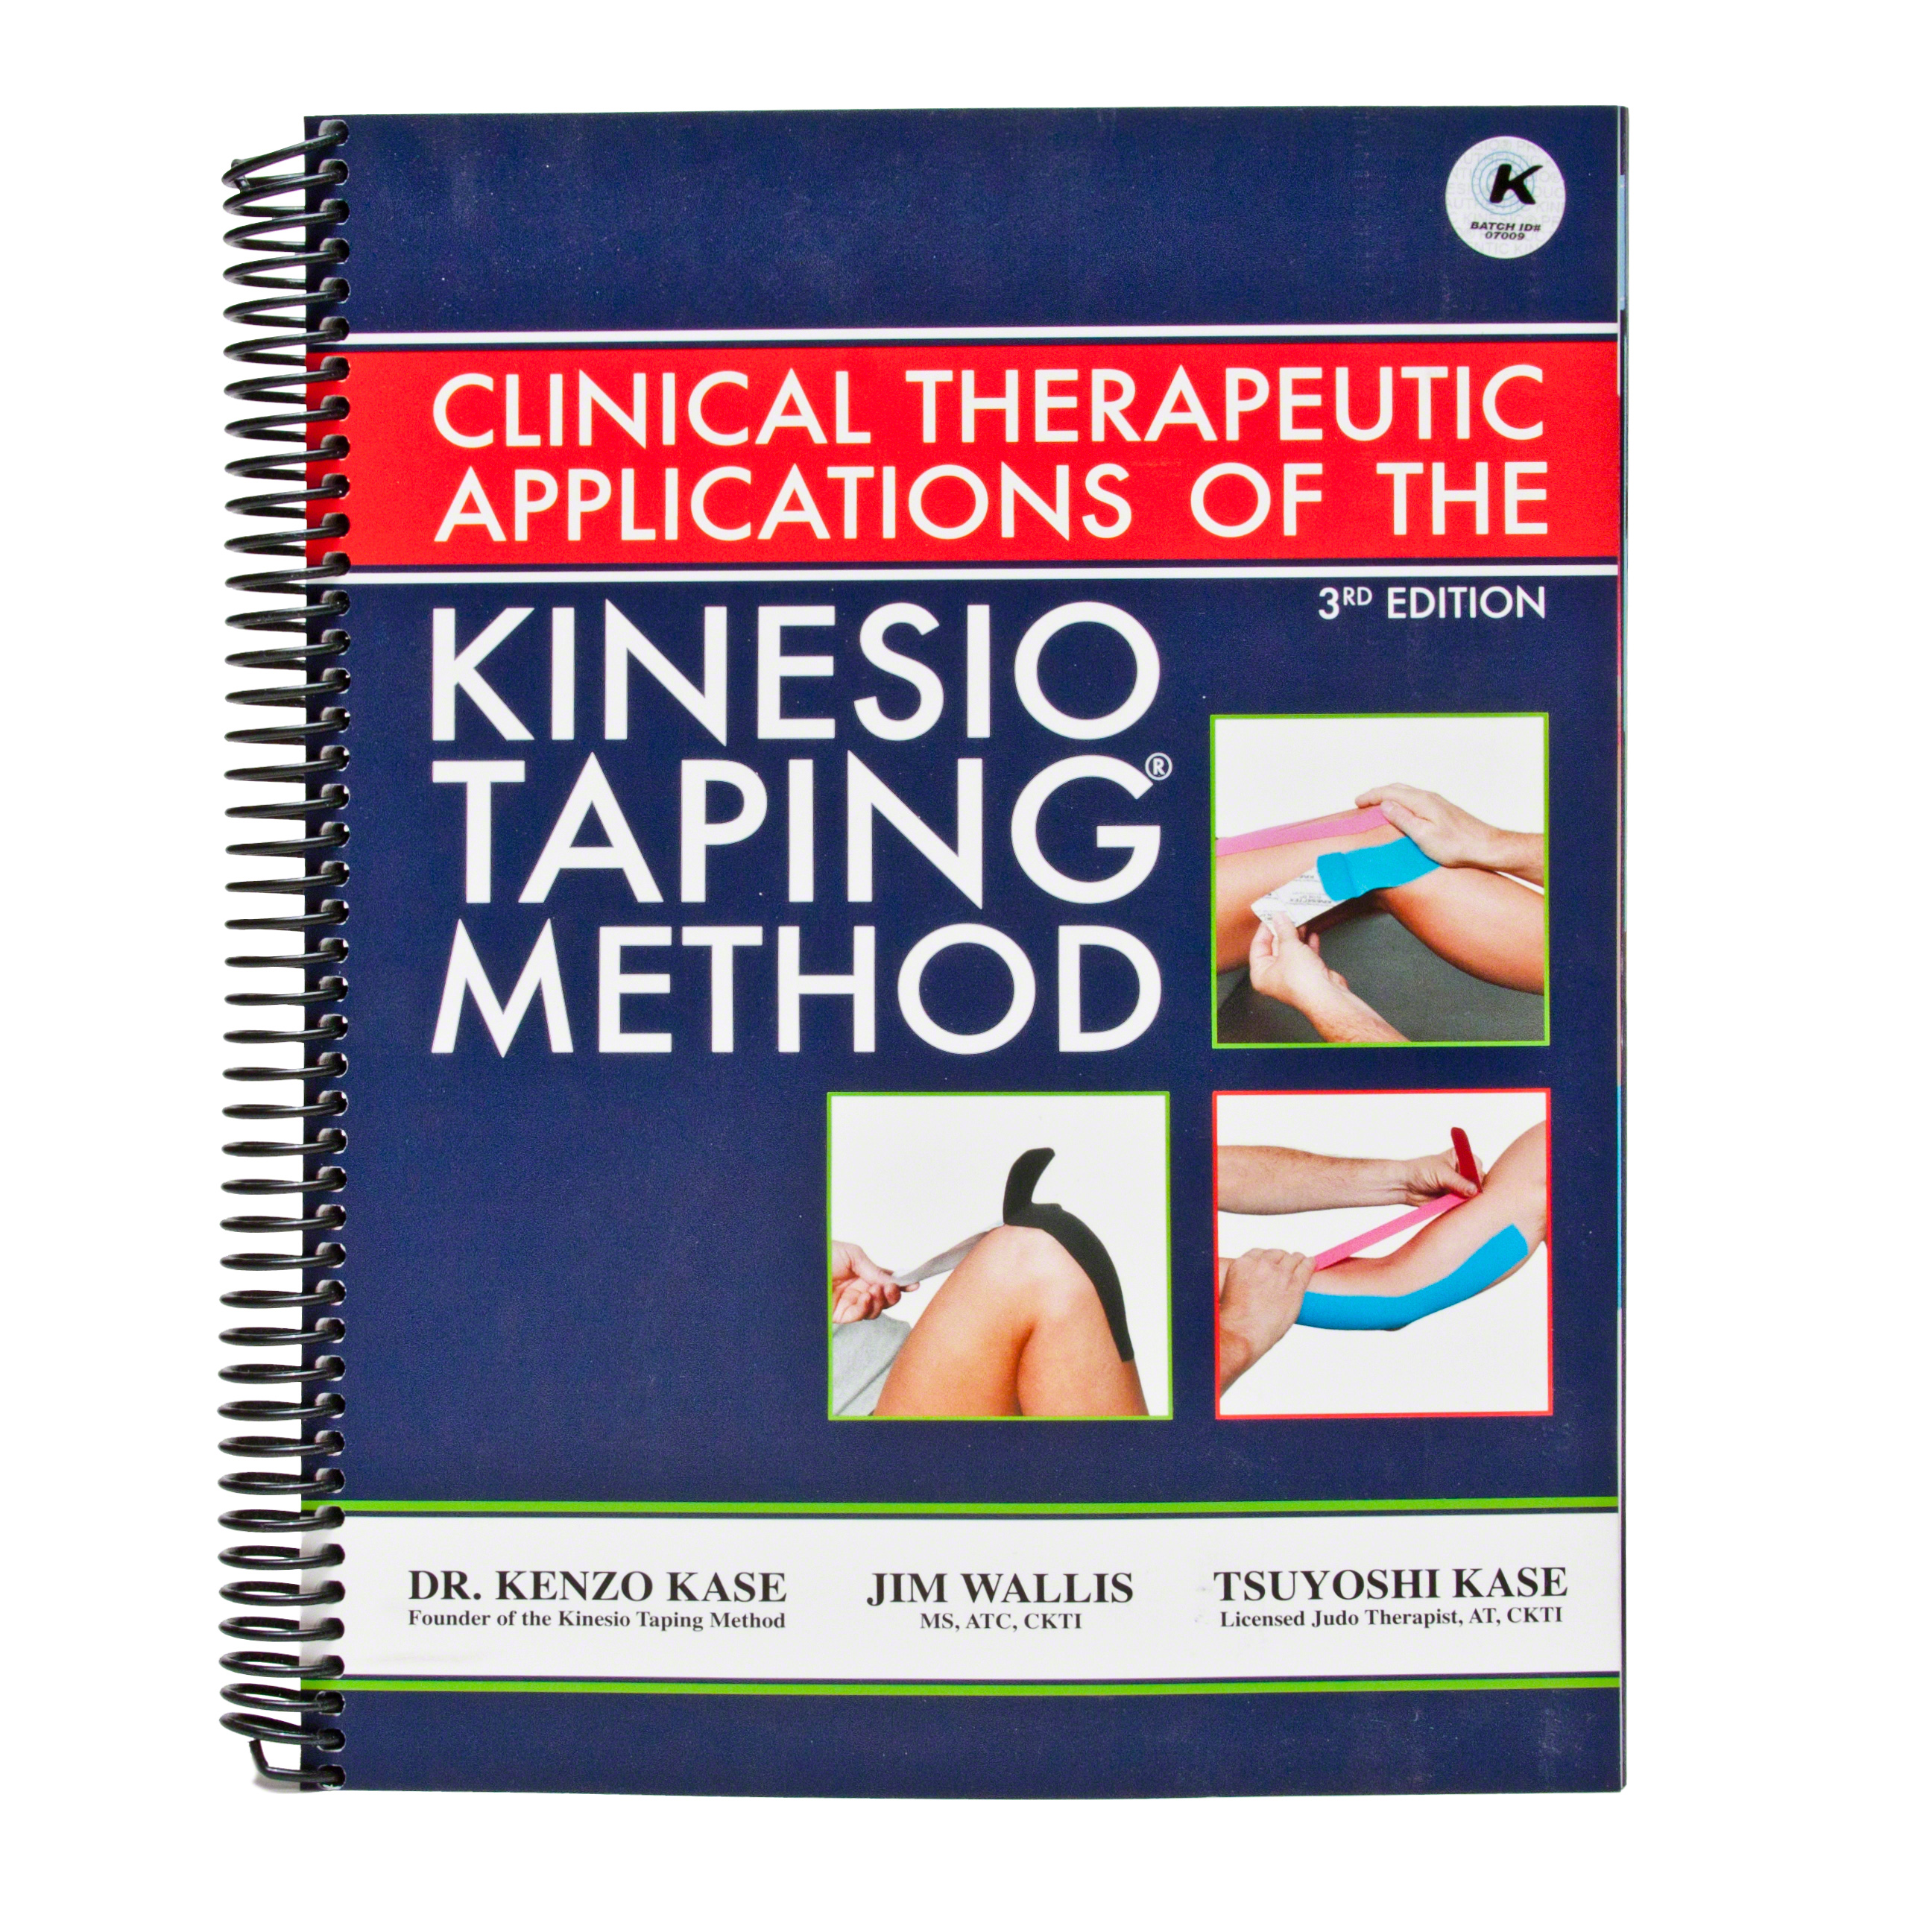 kinesio-tape-bk3-clinical-therapeutic-3rd-edition-01.jpg